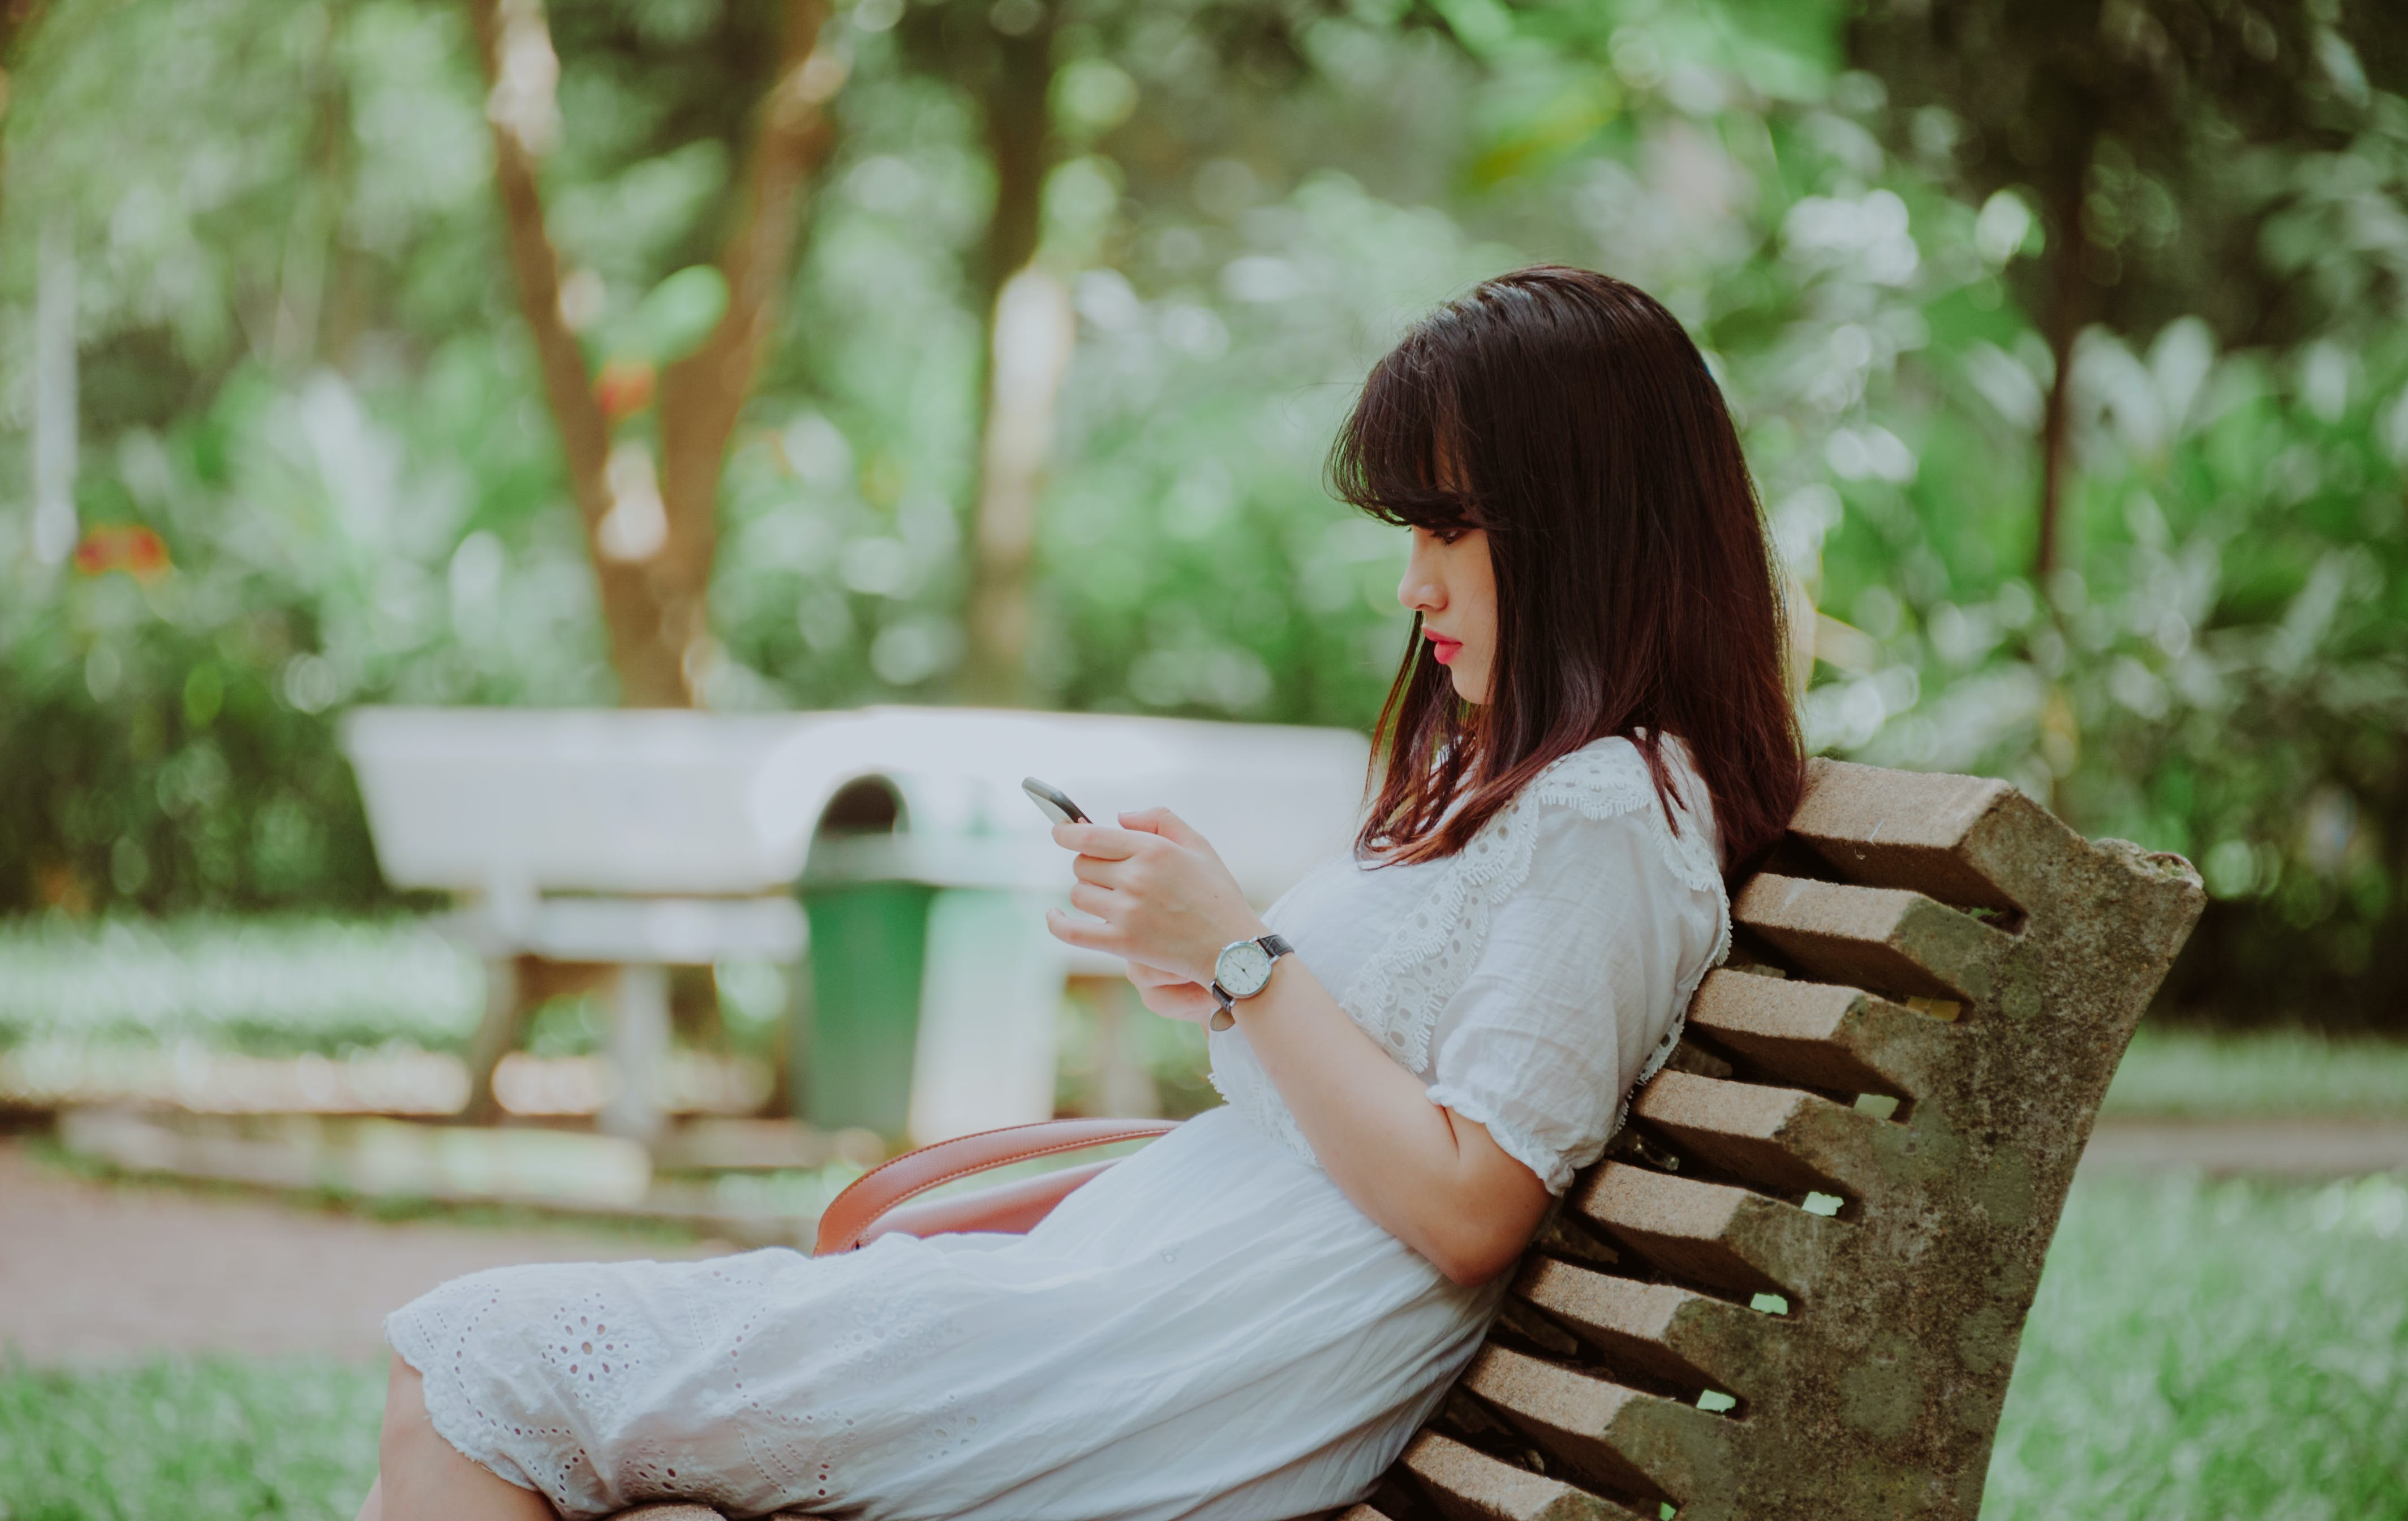 Woman Sitting on Bench Checking Her Phone